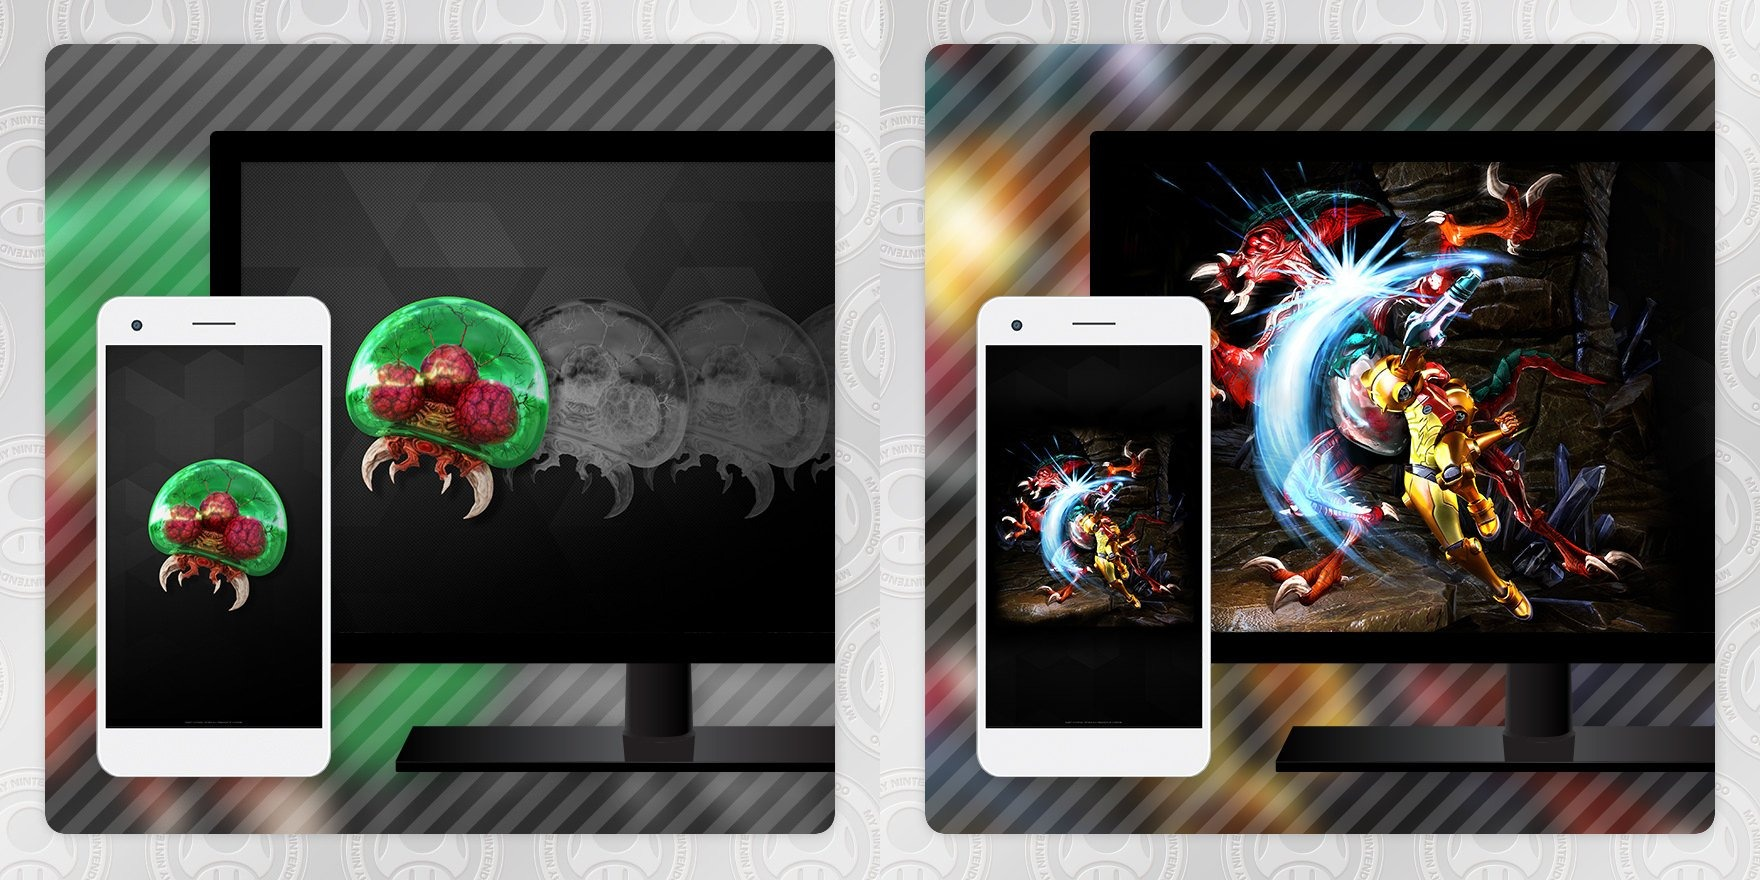 Metroid: Samus Returns wallpapers στο ευρωπαϊκό My Nintendo